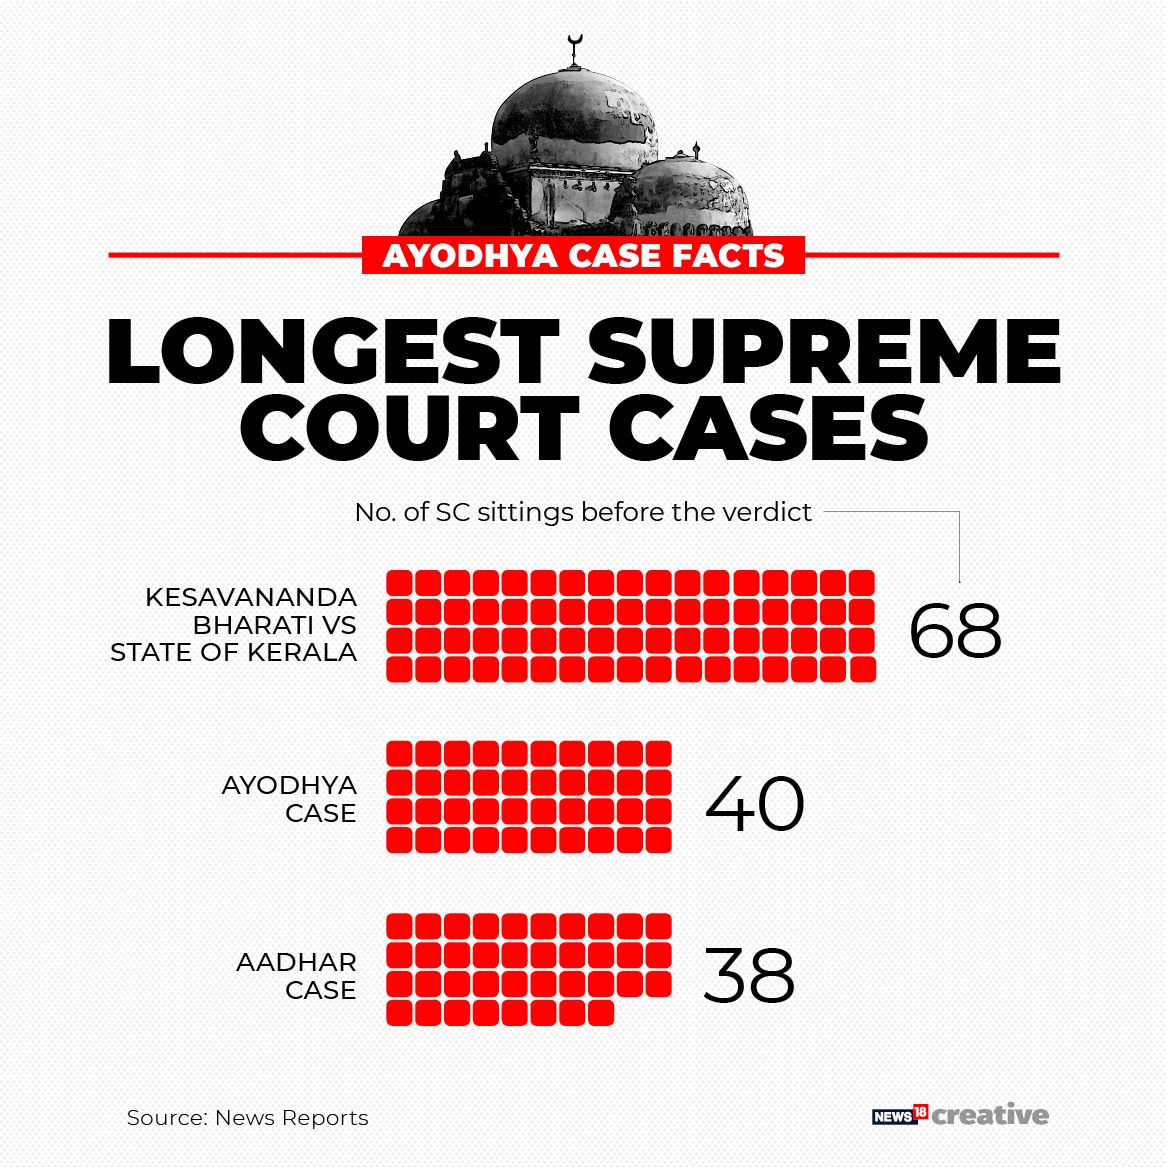 Ayodhya was one of the longest Supreme Court cases.